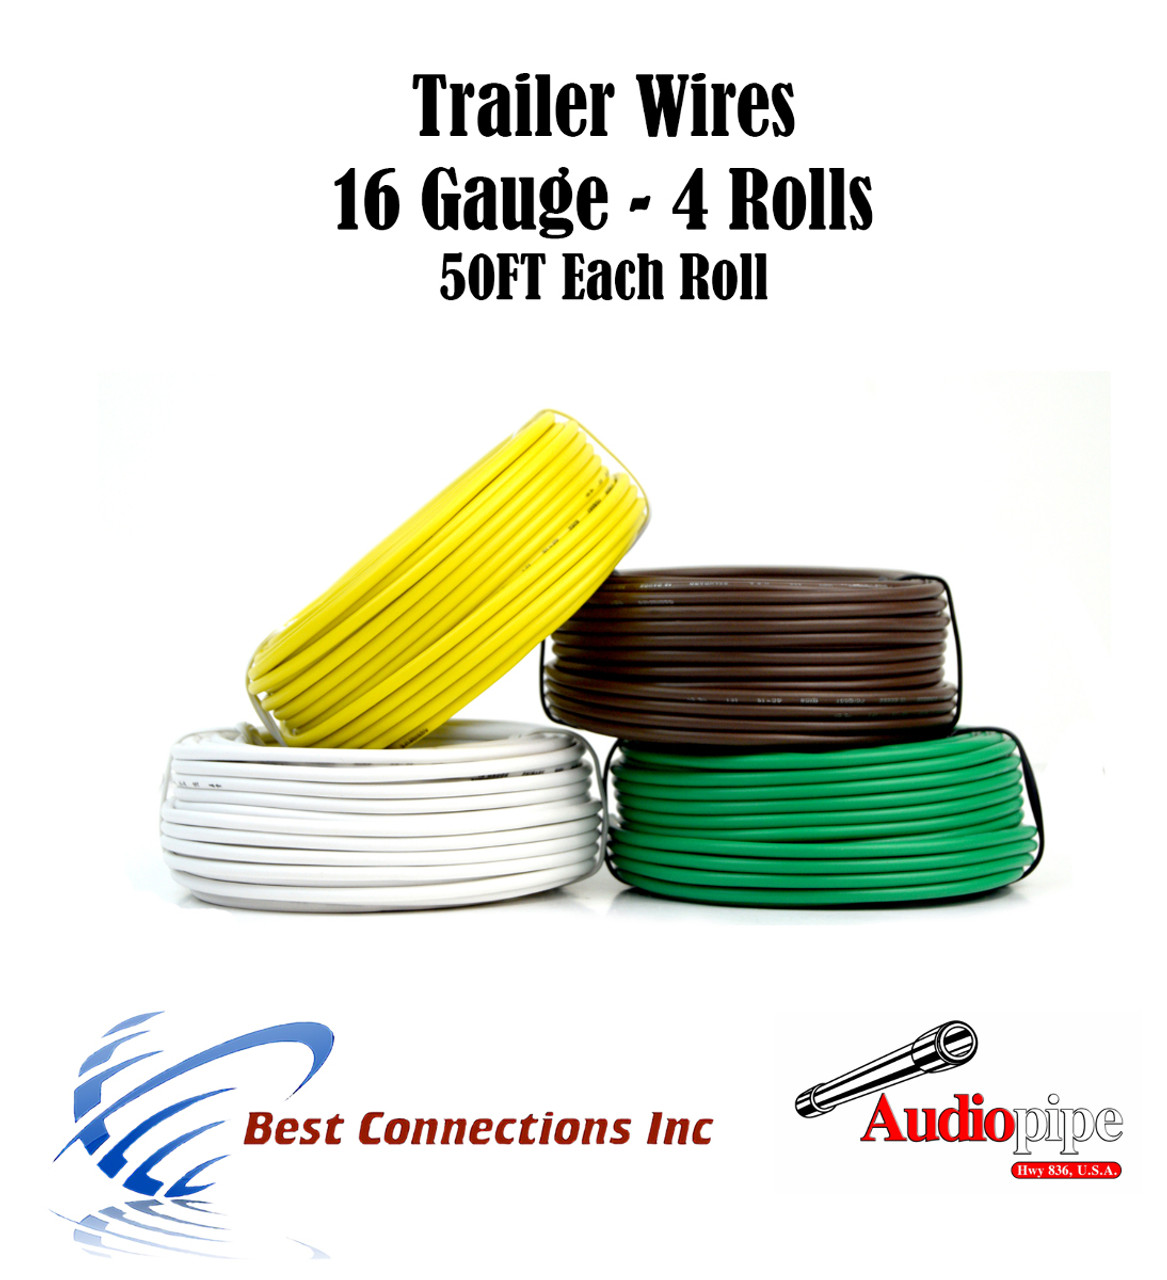 hight resolution of 4 way trailer wire light cable for harness 50 ft each roll 16 gauge 4 colors